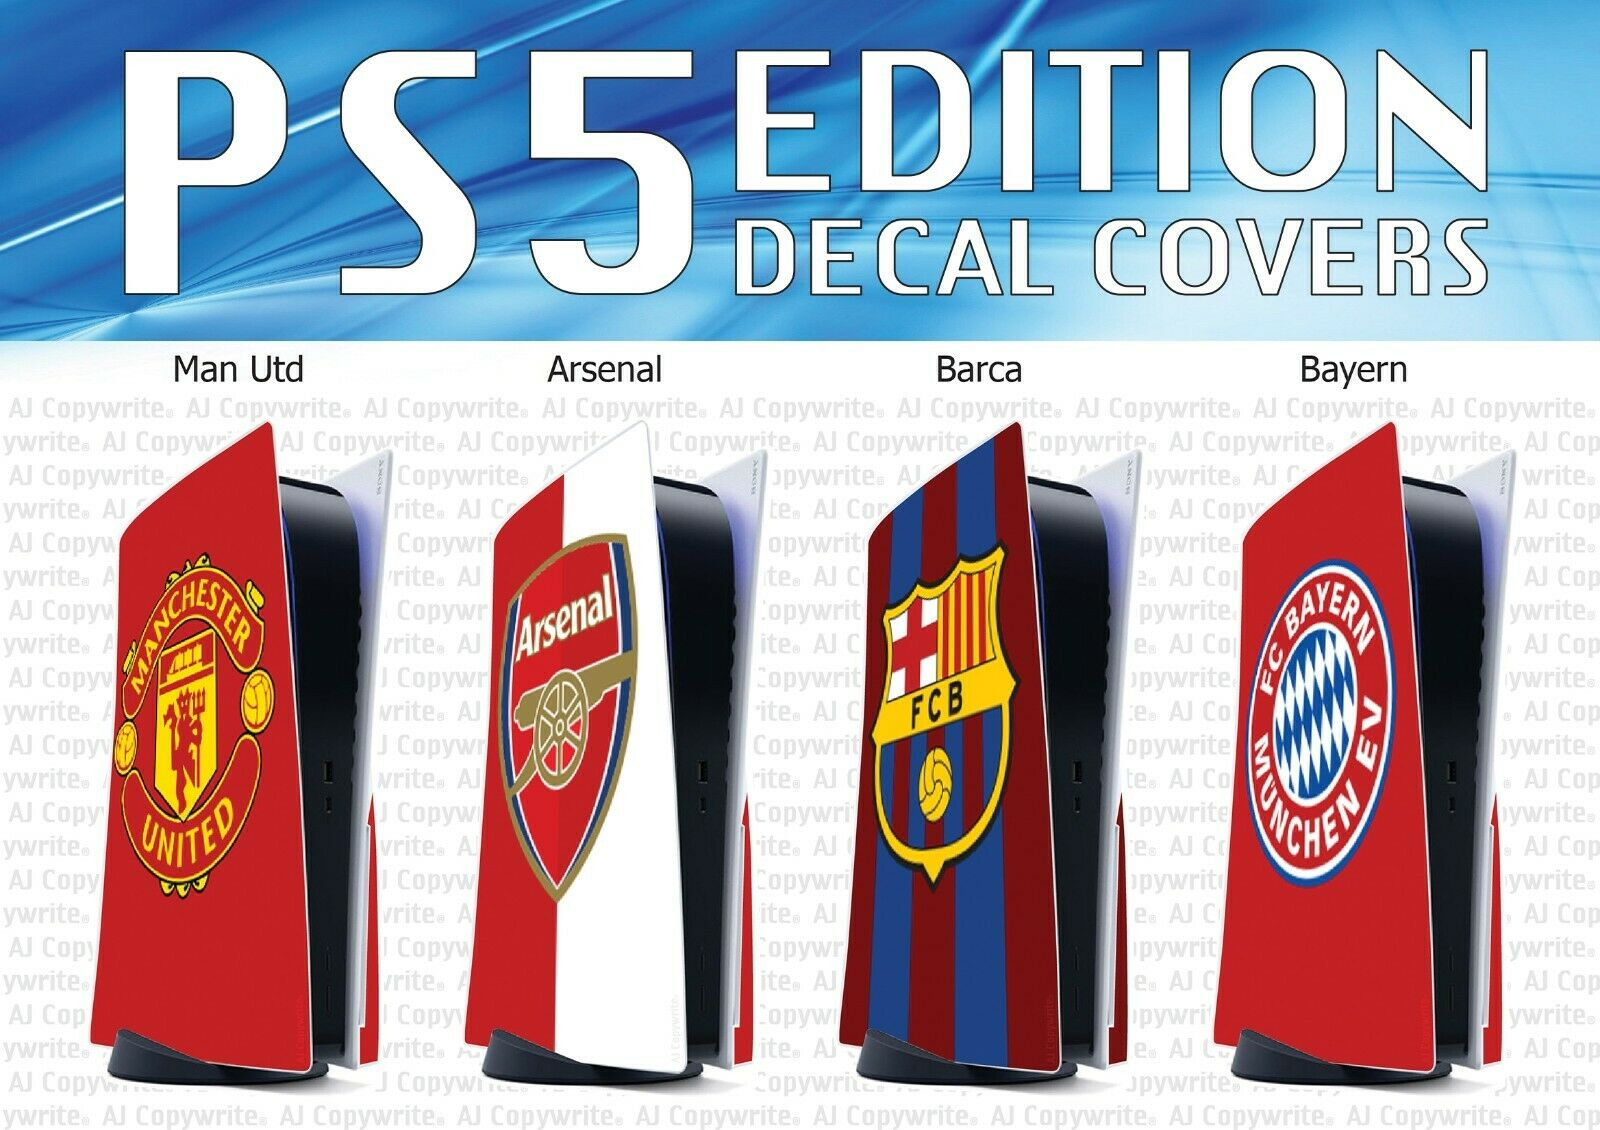 PS5 Custom Made Decal Covers - Any Design (The Best Decals on eBay)